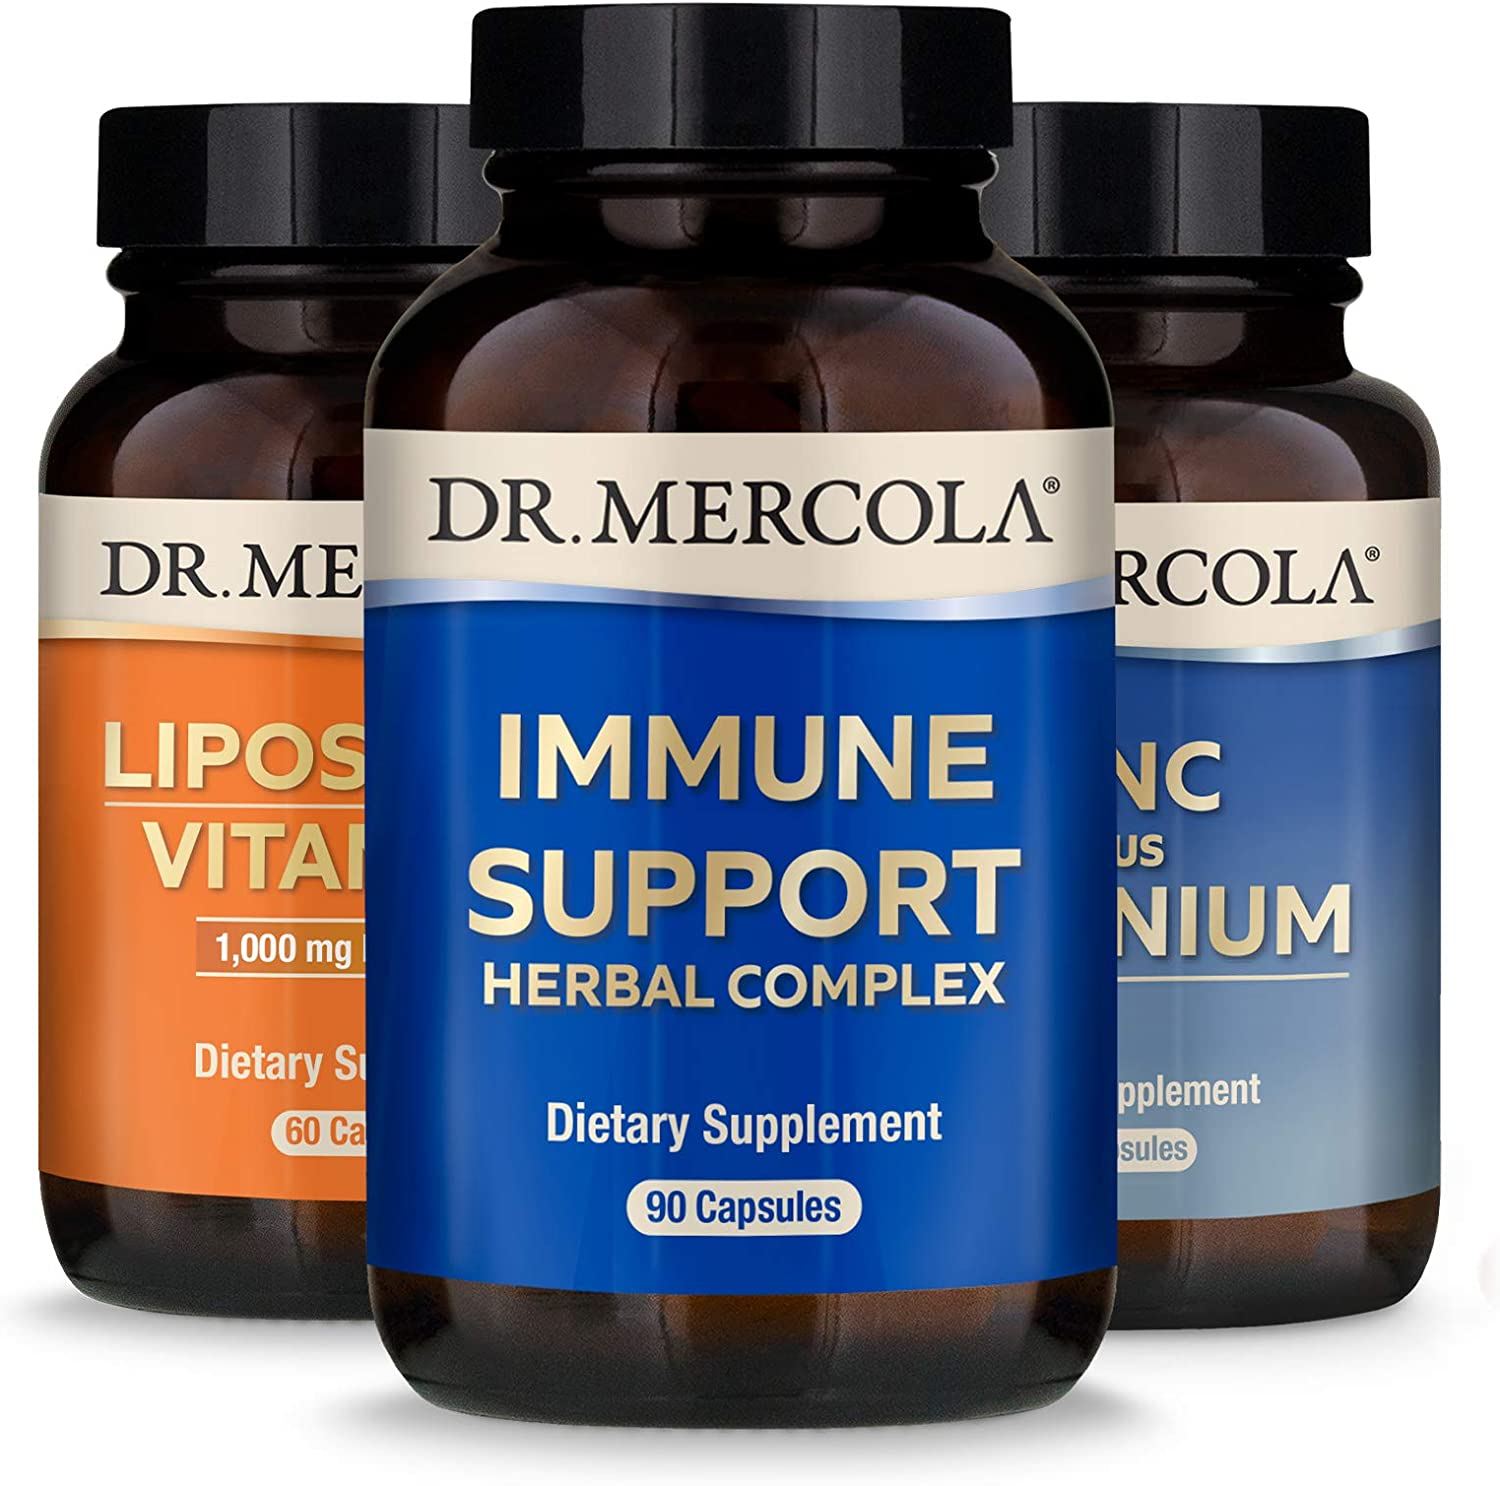 Dr. Mercola Immune Support Pack, Pack of 3 Bottles (30 Servings Each), Liposomal Vitamin C, Zinc Plus Selenium, Supports Immune and Overall Health*, Non GMO, Gluten Free, Soy Free